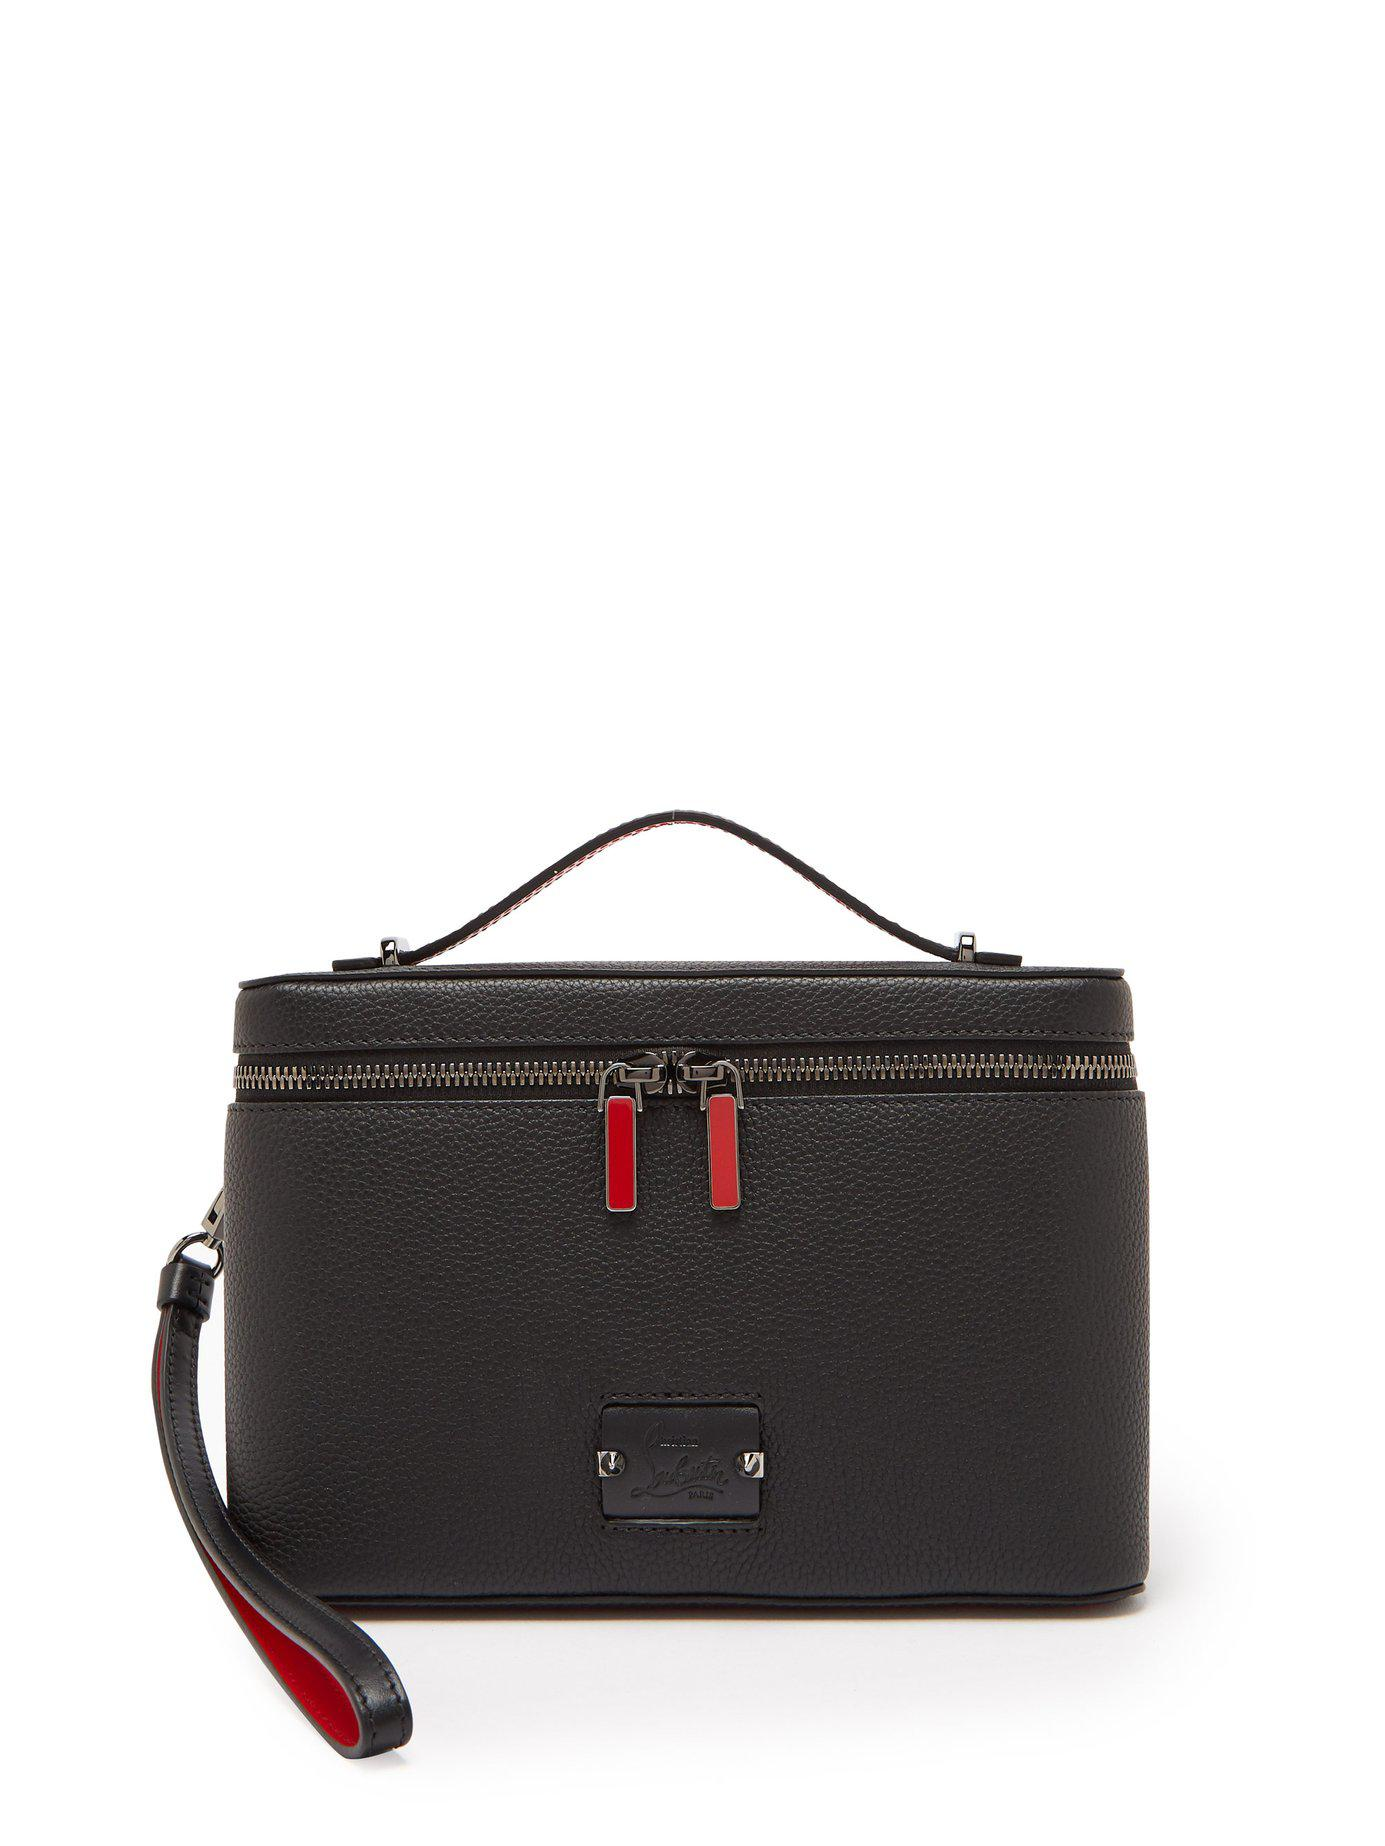 b3bf40db037f2 Lyst - Christian Louboutin Kypipouch in Black for Men - Save 7%